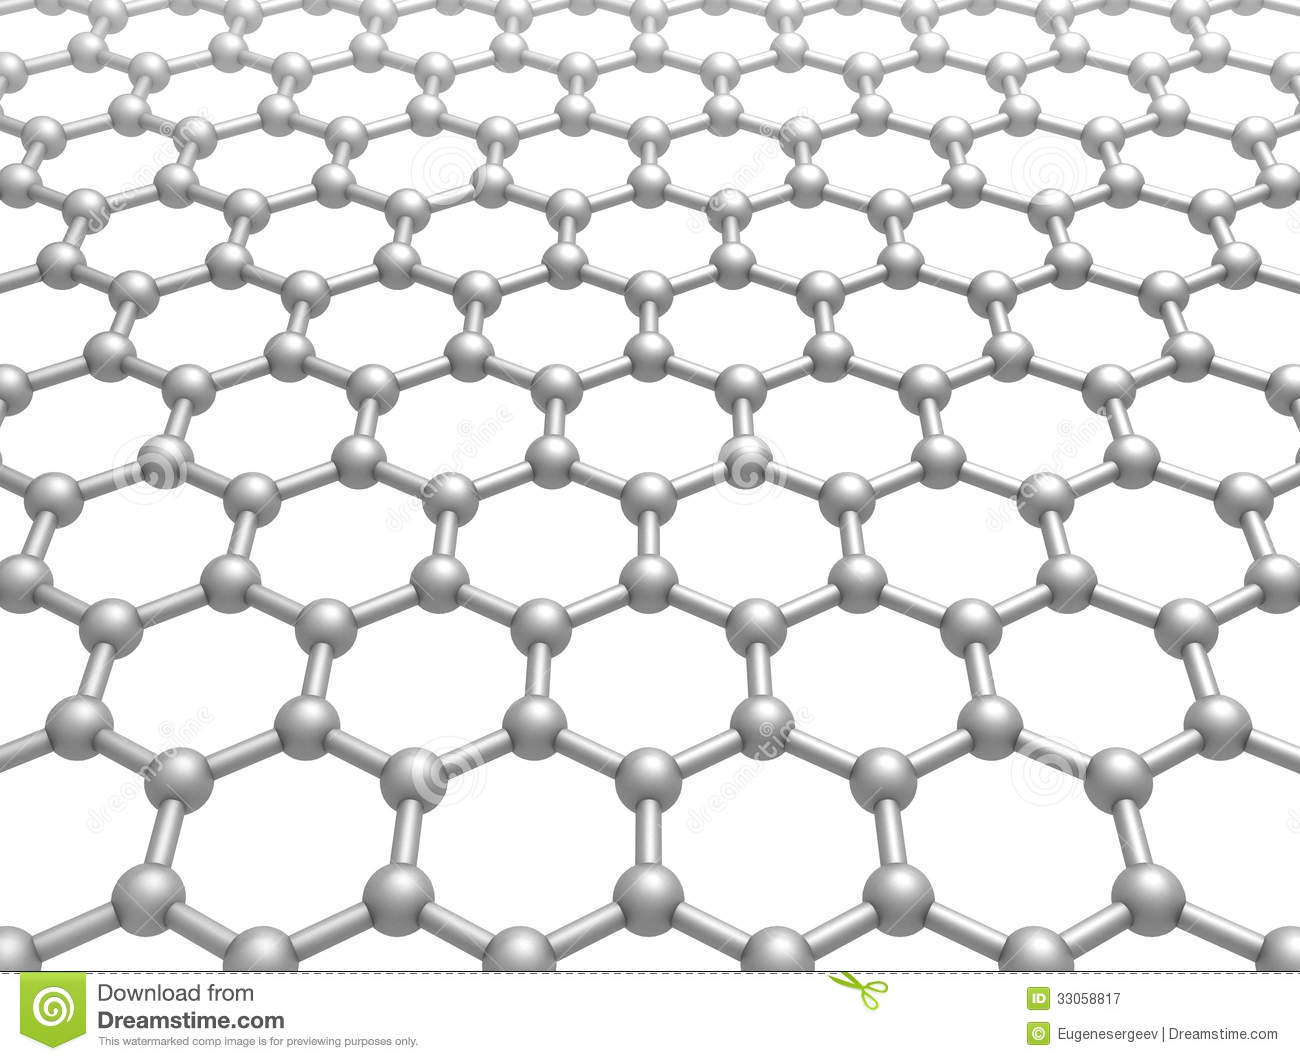 Graphene Layer Structure Schematic 3d Model Stock